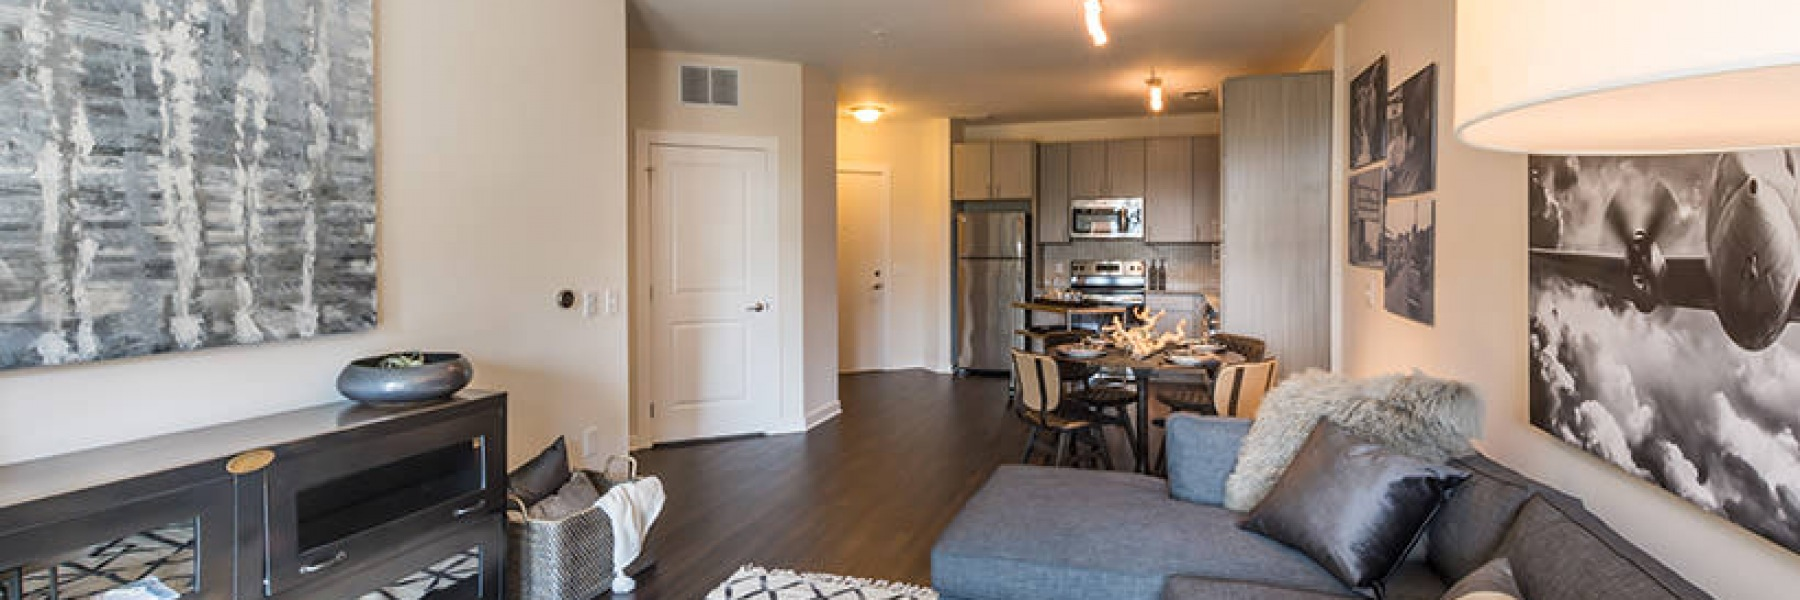 Jr. One Bedroom | Studio, 1, & 2 Bedroom Apts. in Durham, NC ...